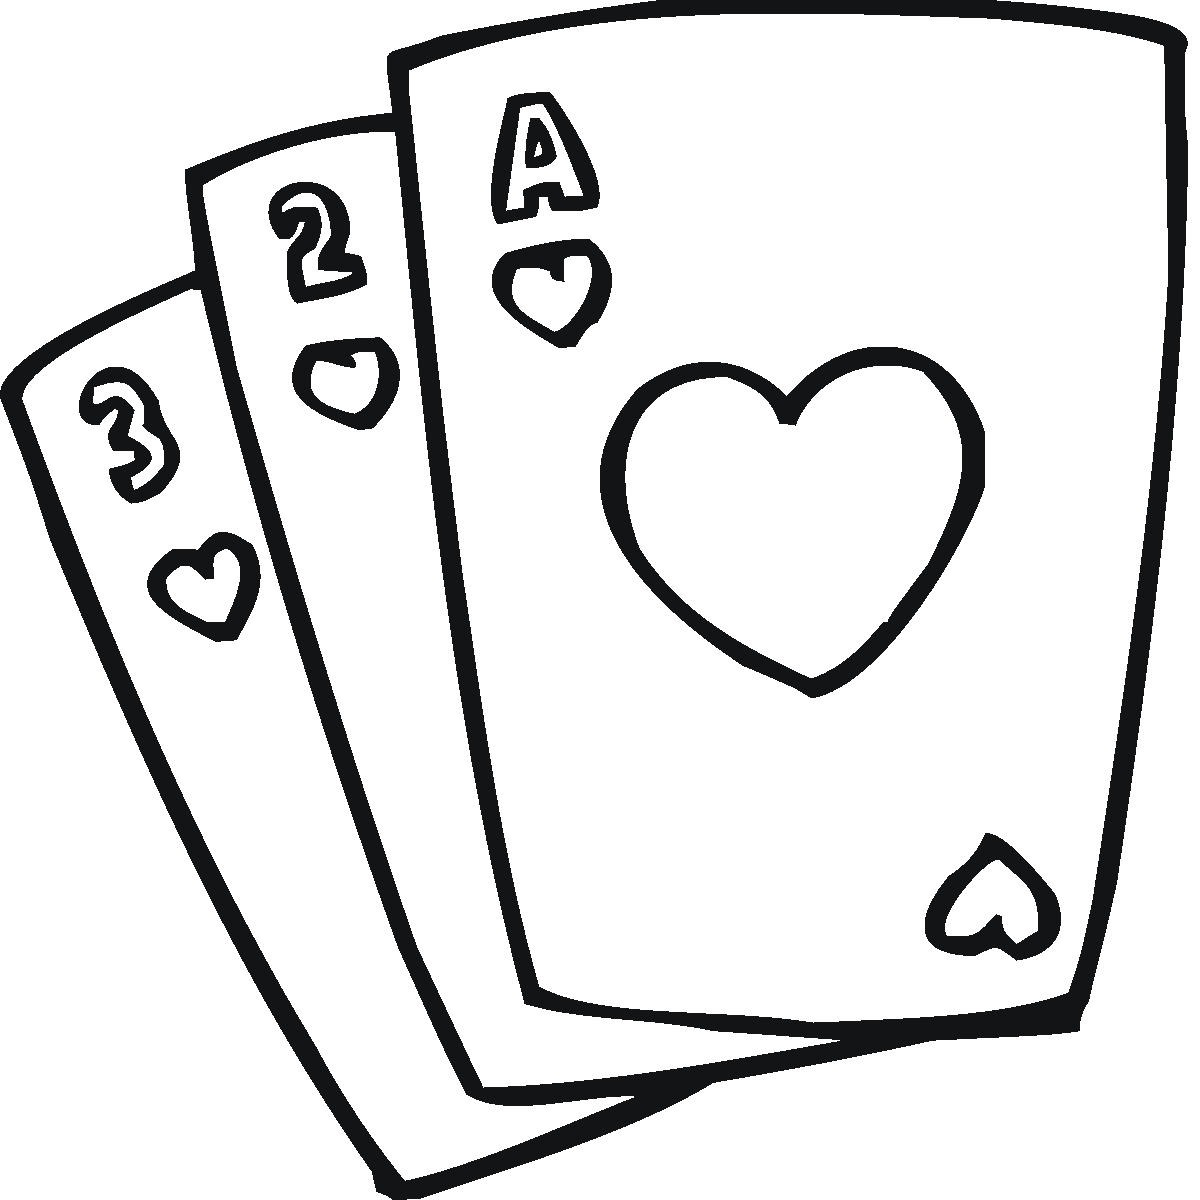 Free Deck Of Cards Clipart, Download Free Clip Art, Free.